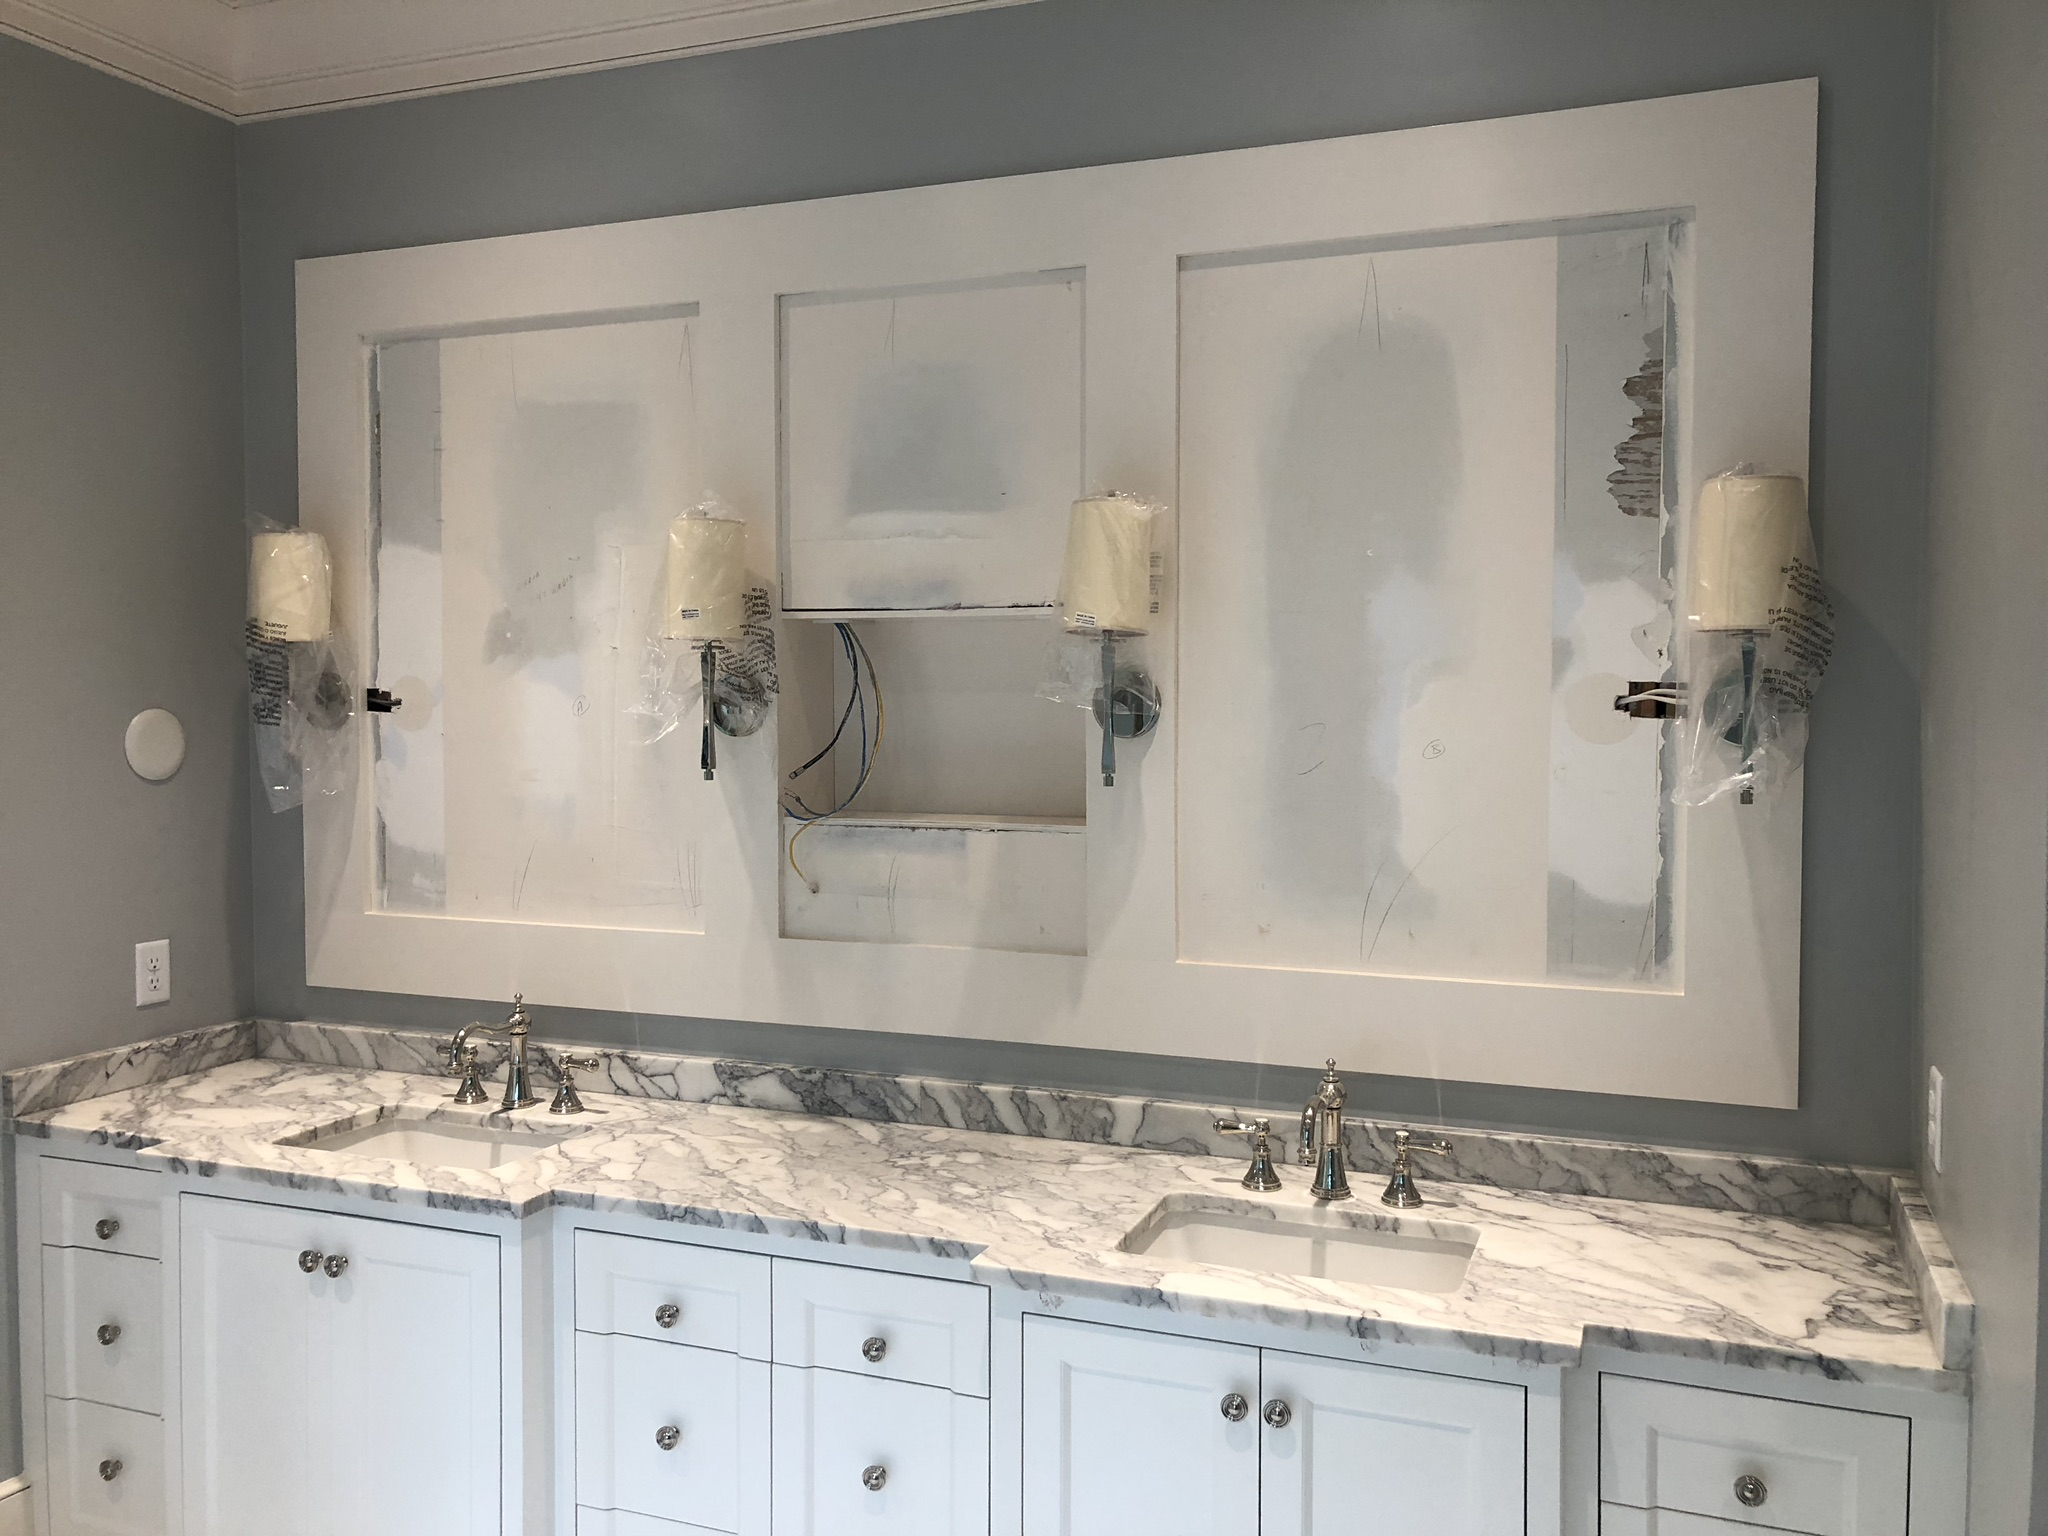 This Is Why Aic Has Designed Its Own Custom Mirror Tv Solutions That Allow For Simple Future Upgrades With Lower Cost